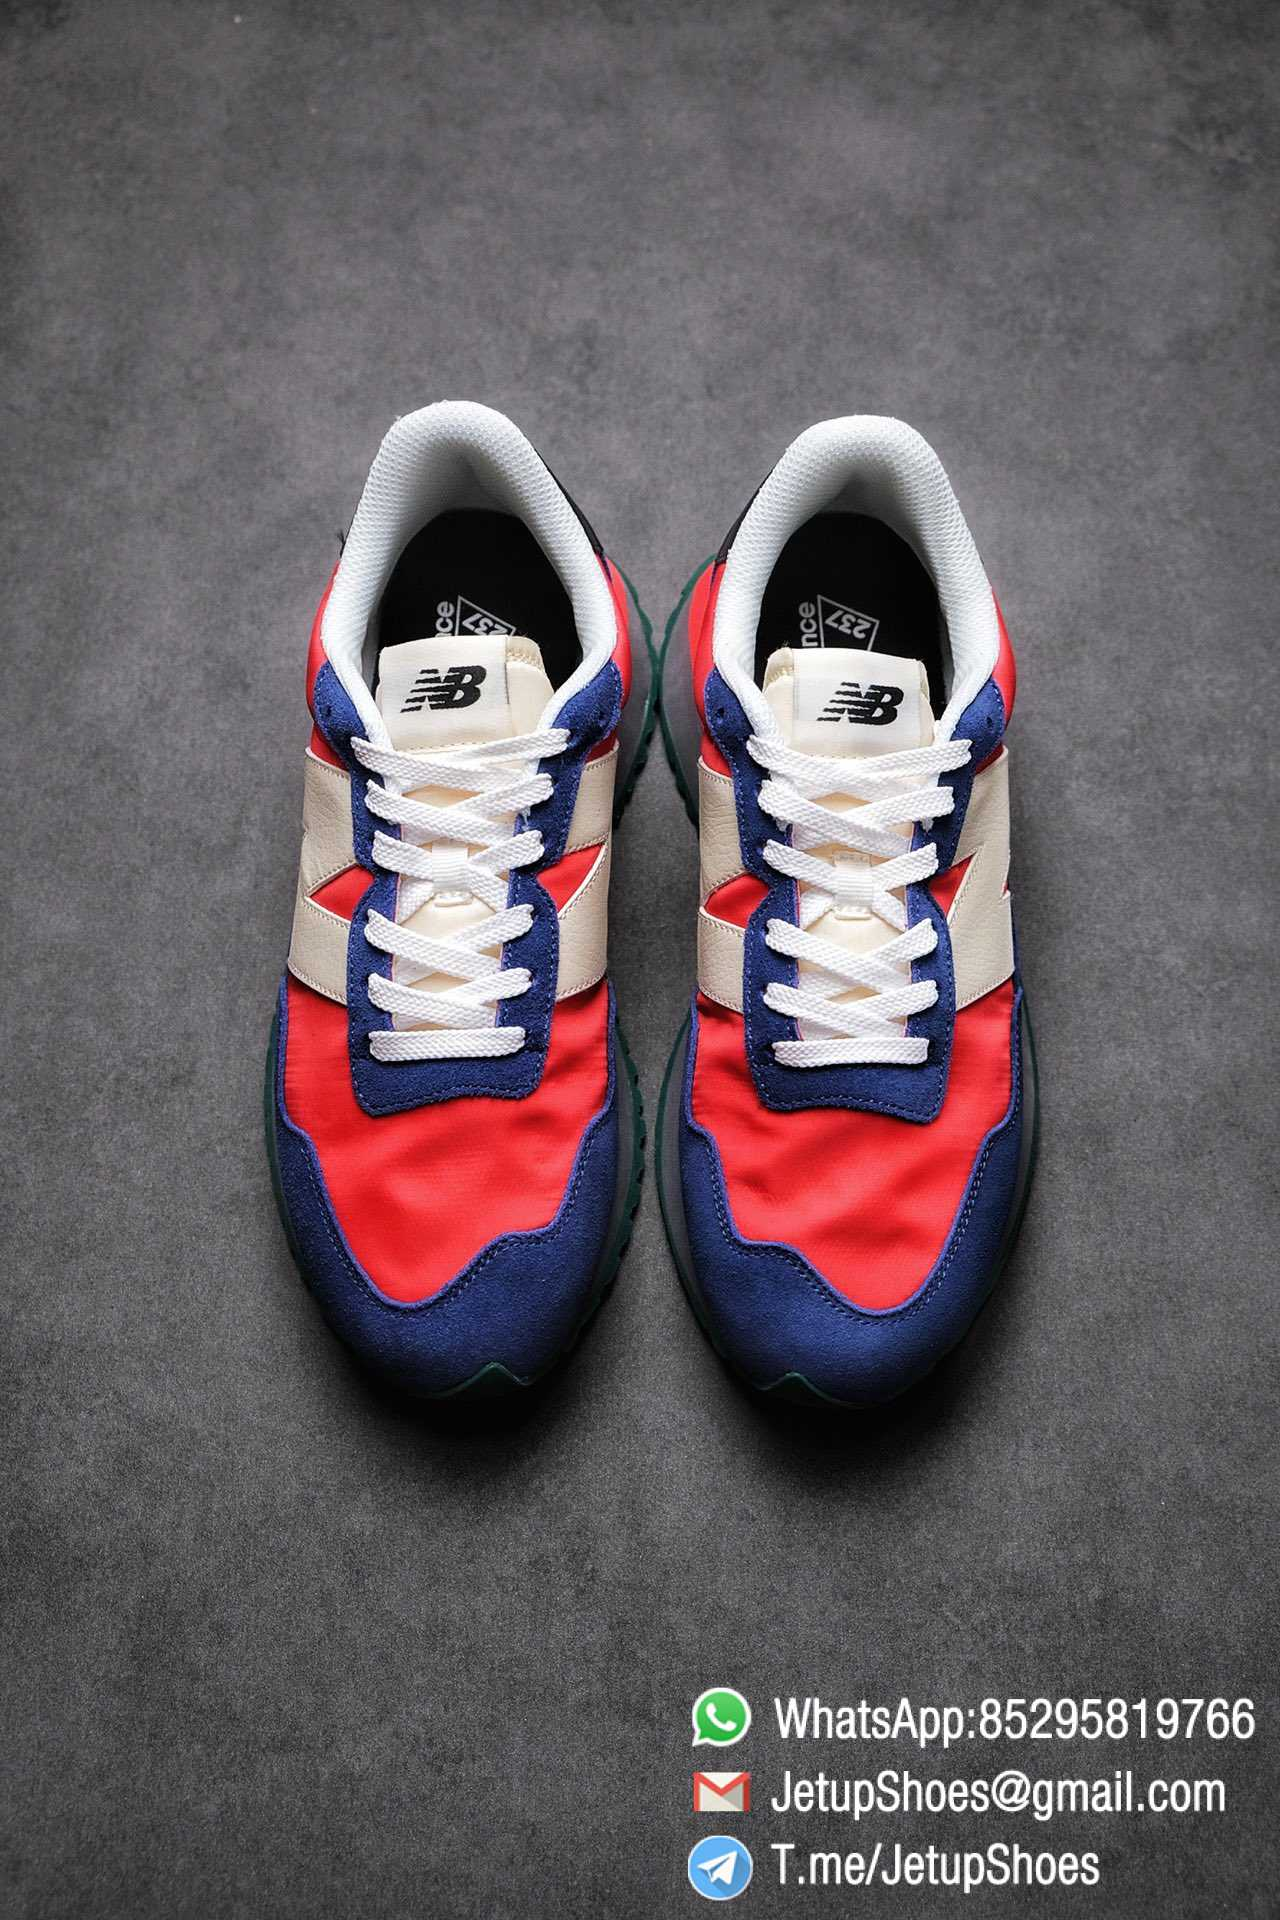 Best Replica New Balance 237 Blue Red SKU MS237LA2 High Quality Fake Sneakers 02 1